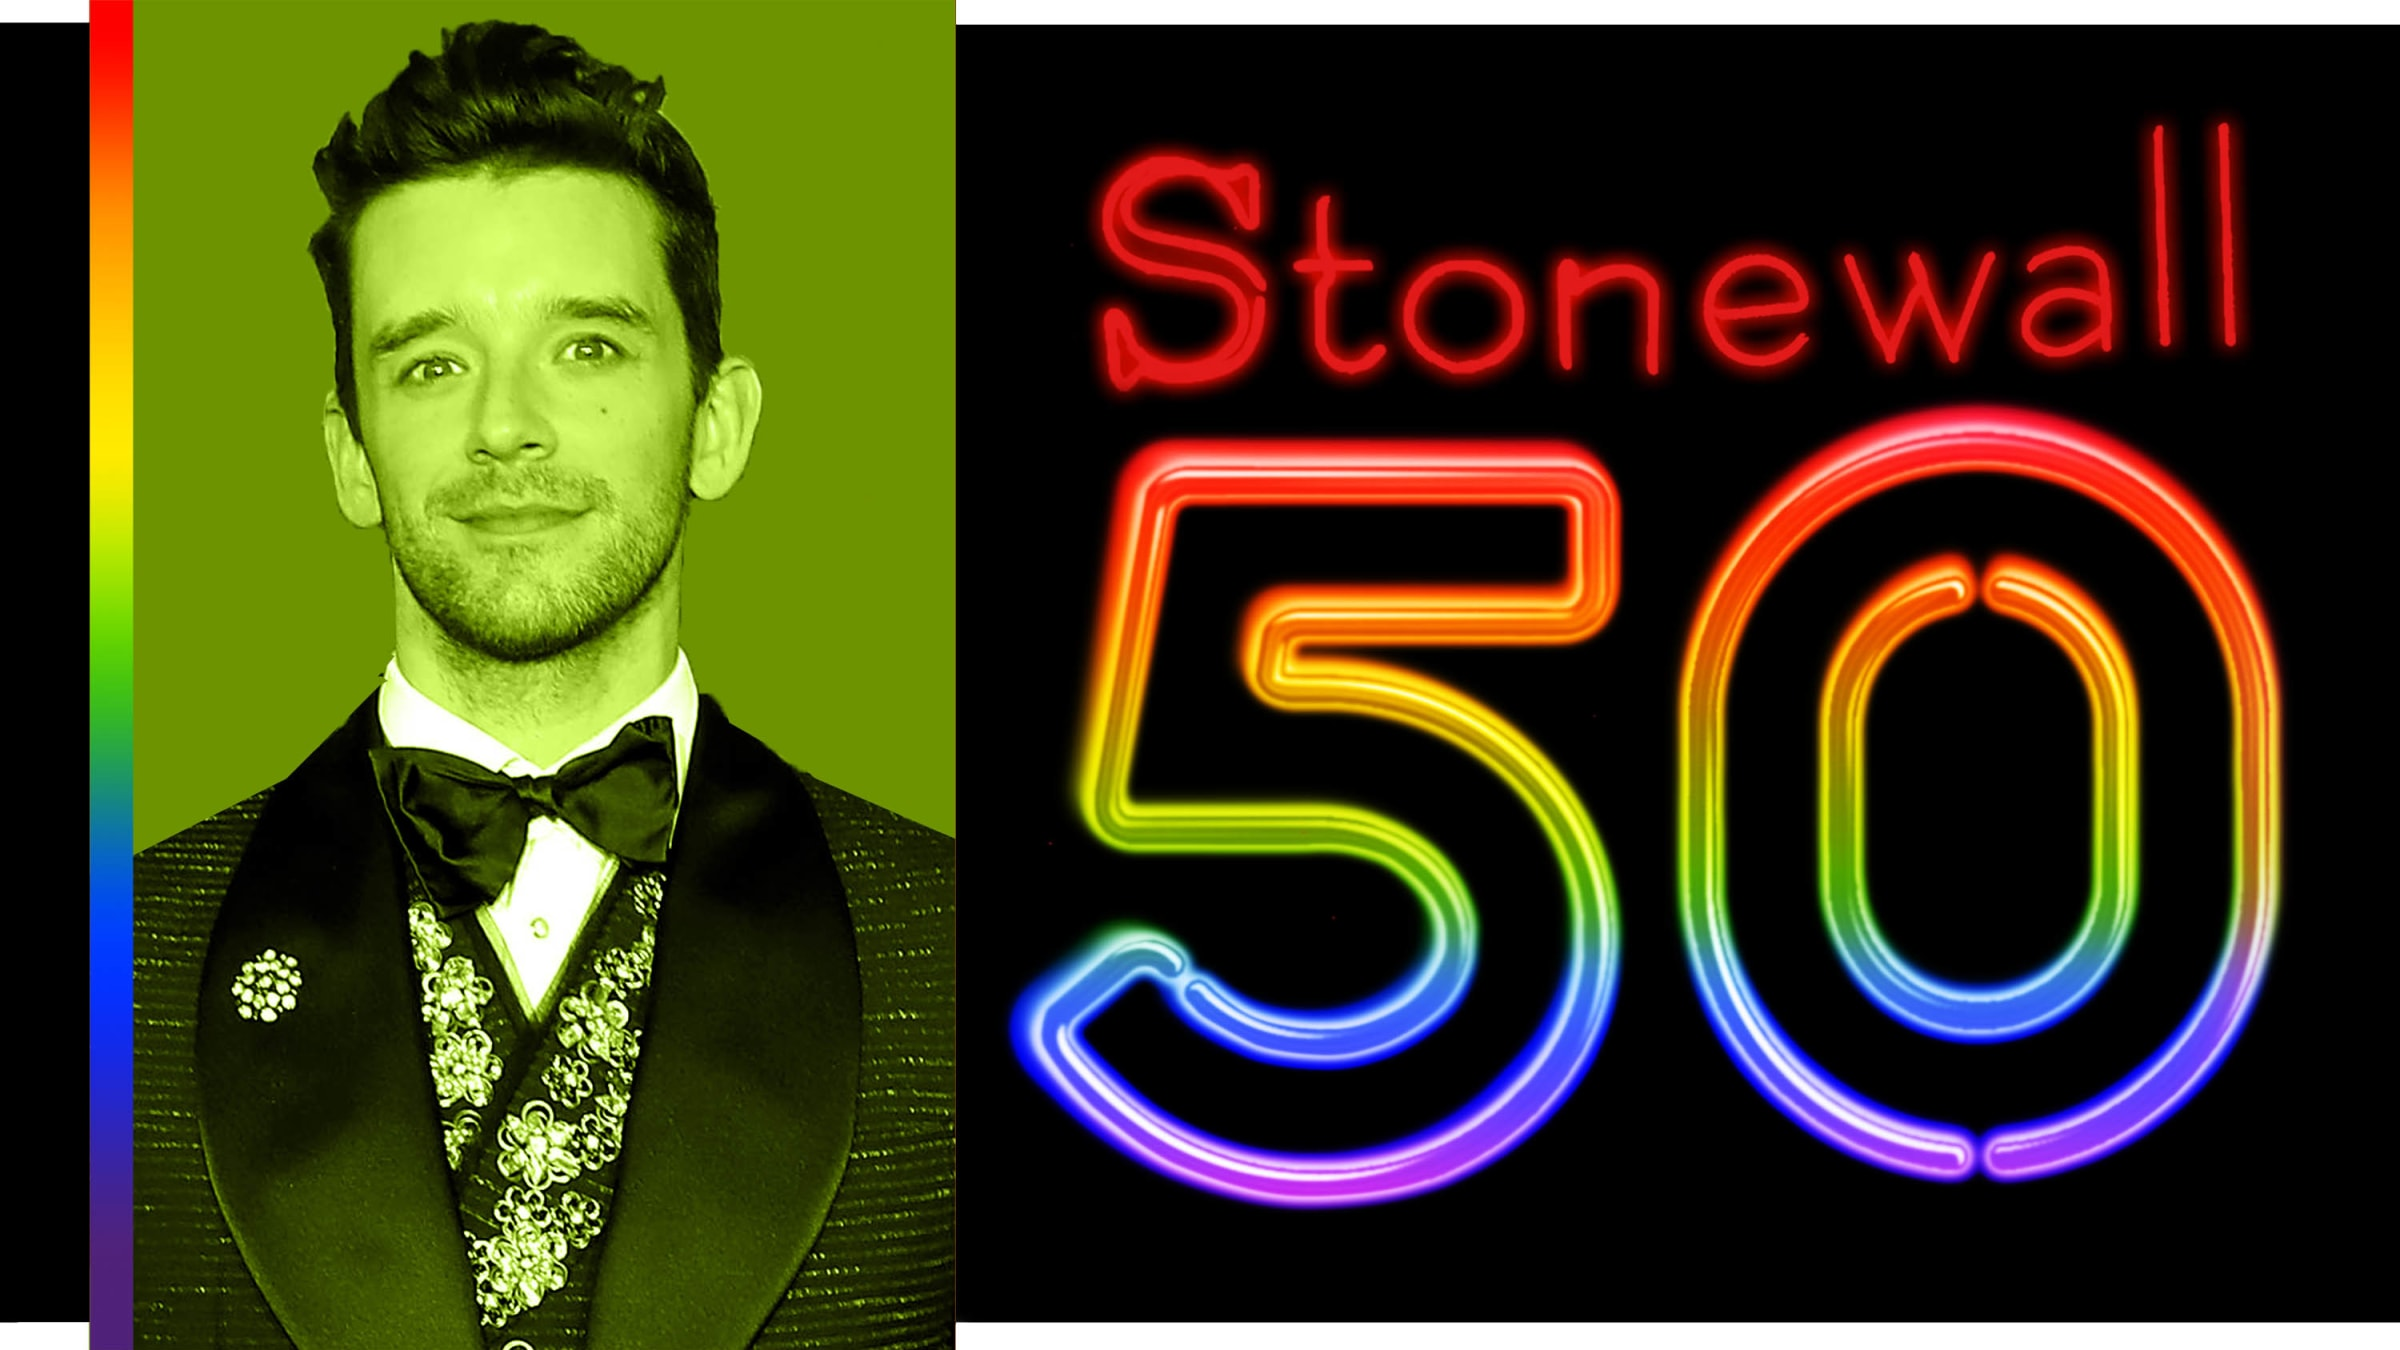 Michael Urie on Stonewall 50: I Hope Coming Out for LGBT People Gets Easier, Safer, and Maybe Even Unnecessary